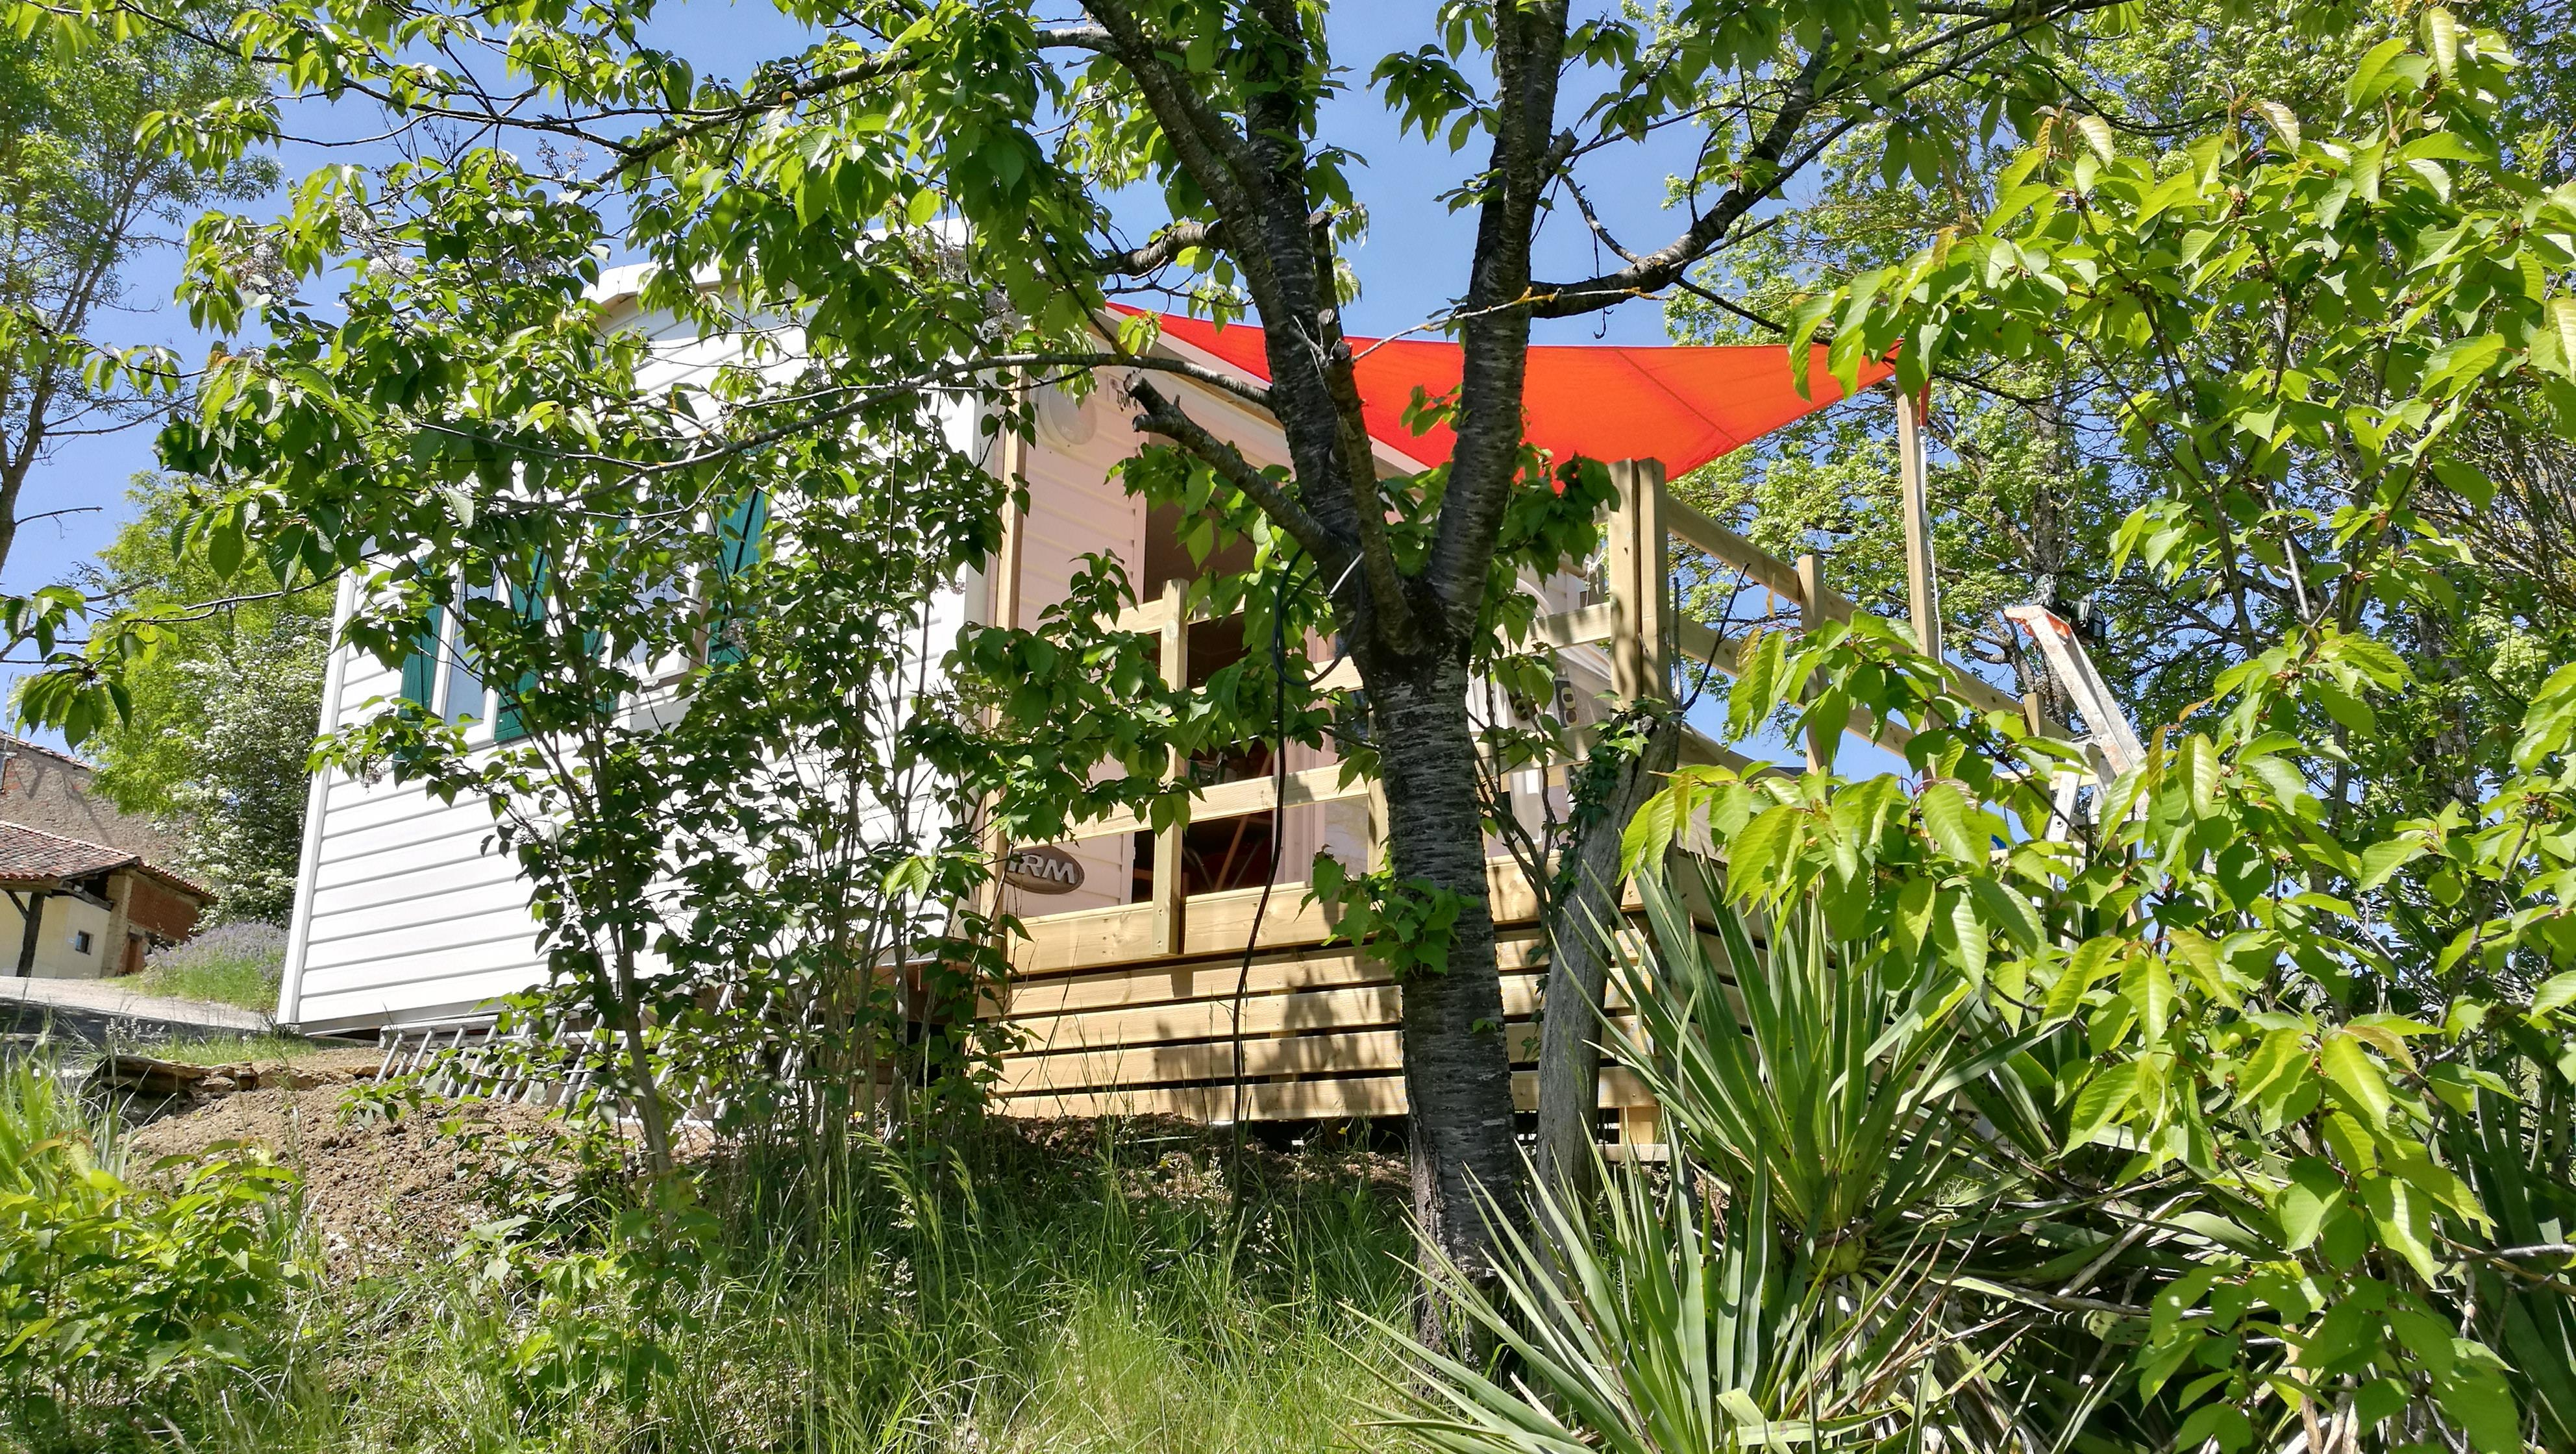 Accommodation - Rossignol (10) - Camping Naturiste Les Aillos